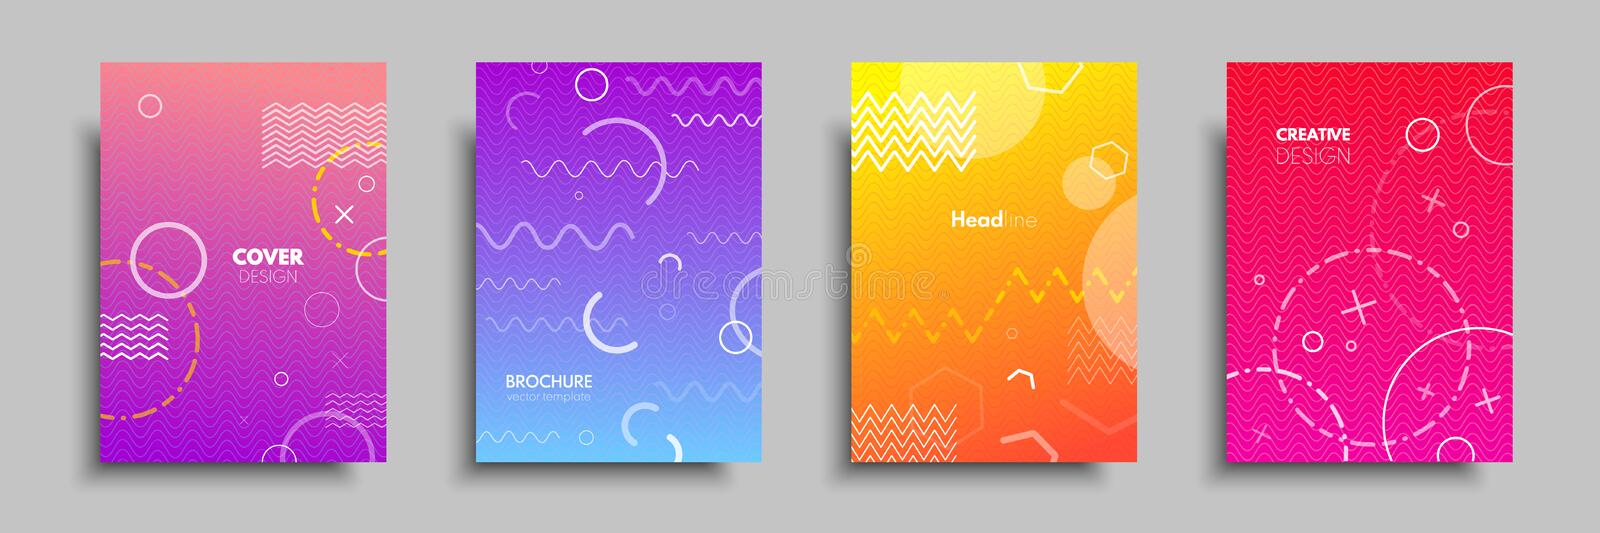 Modern colorful covers with multi-colored geometric shapes and objects. Abstract design template for brochures, flyers, banners, h vector illustration